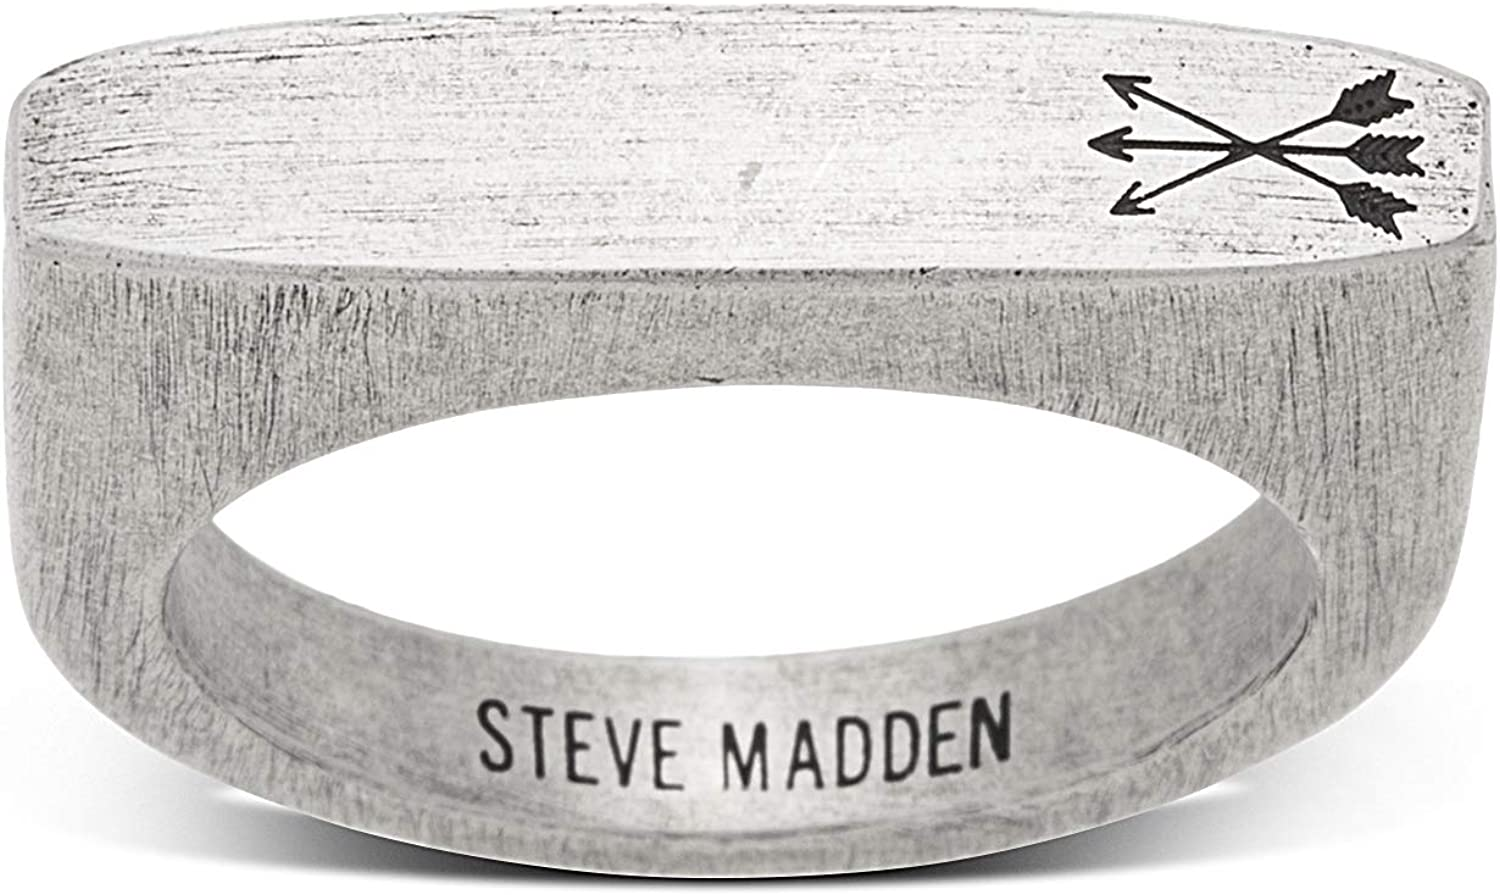 Steve Madden Stainless Steel Matte Arrow Design Flat Ring for Men